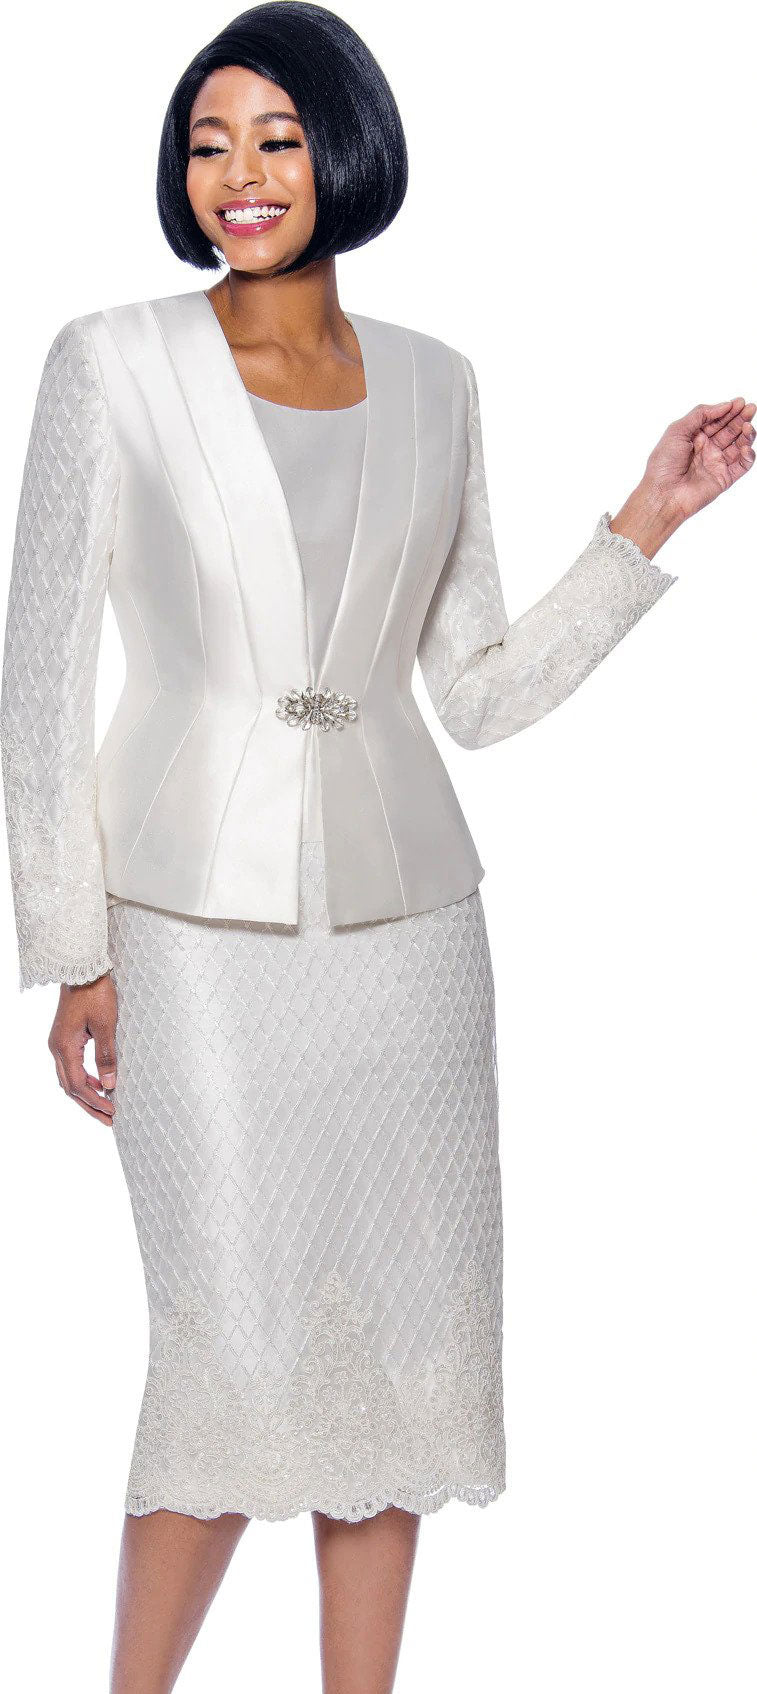 Susanna Suit 3958 - Church Suits For Less